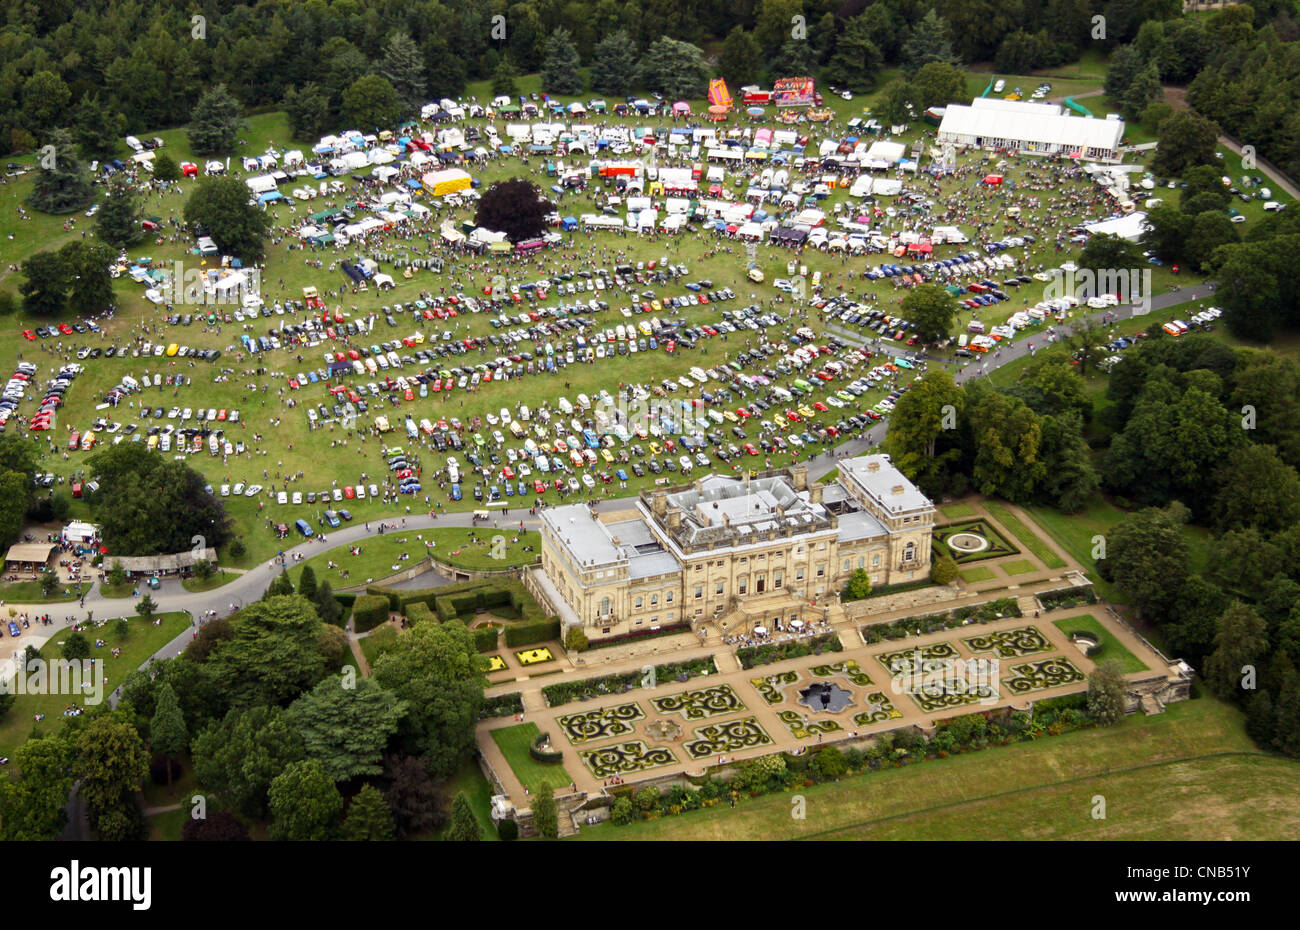 aerial view of Harewood House during the annual VW motor Festival - Stock Image